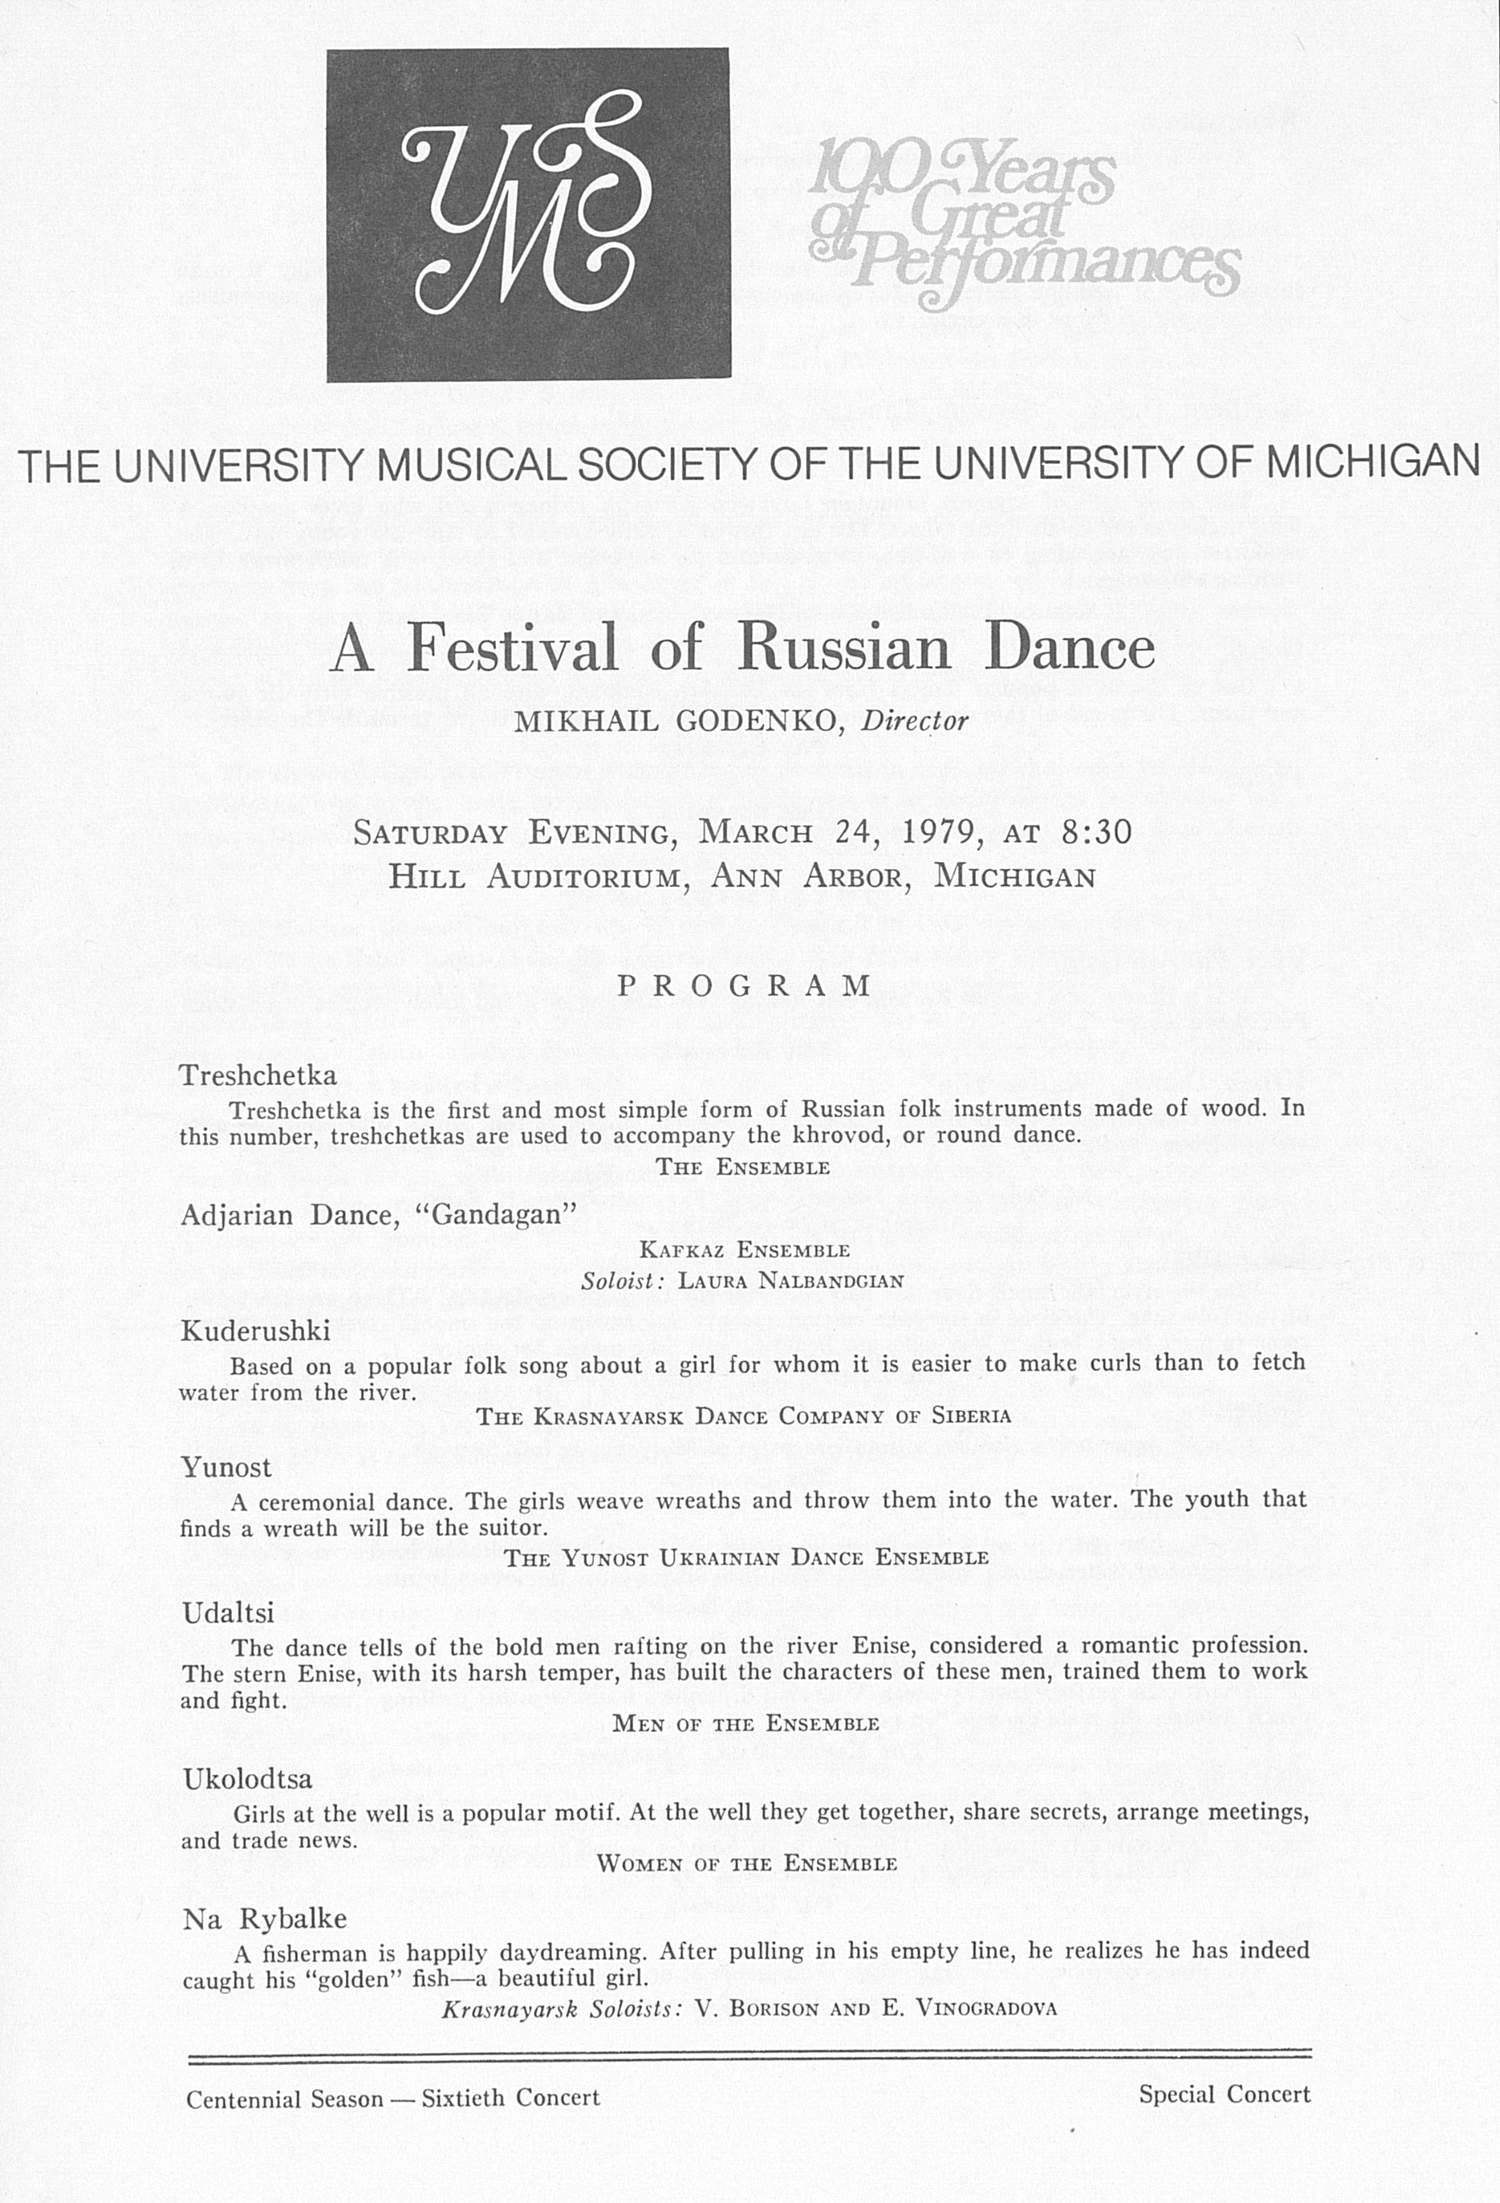 UMS Concert Program, March 24, 1979: A Festival Of Russian Dance -- Mikhail Godenko image